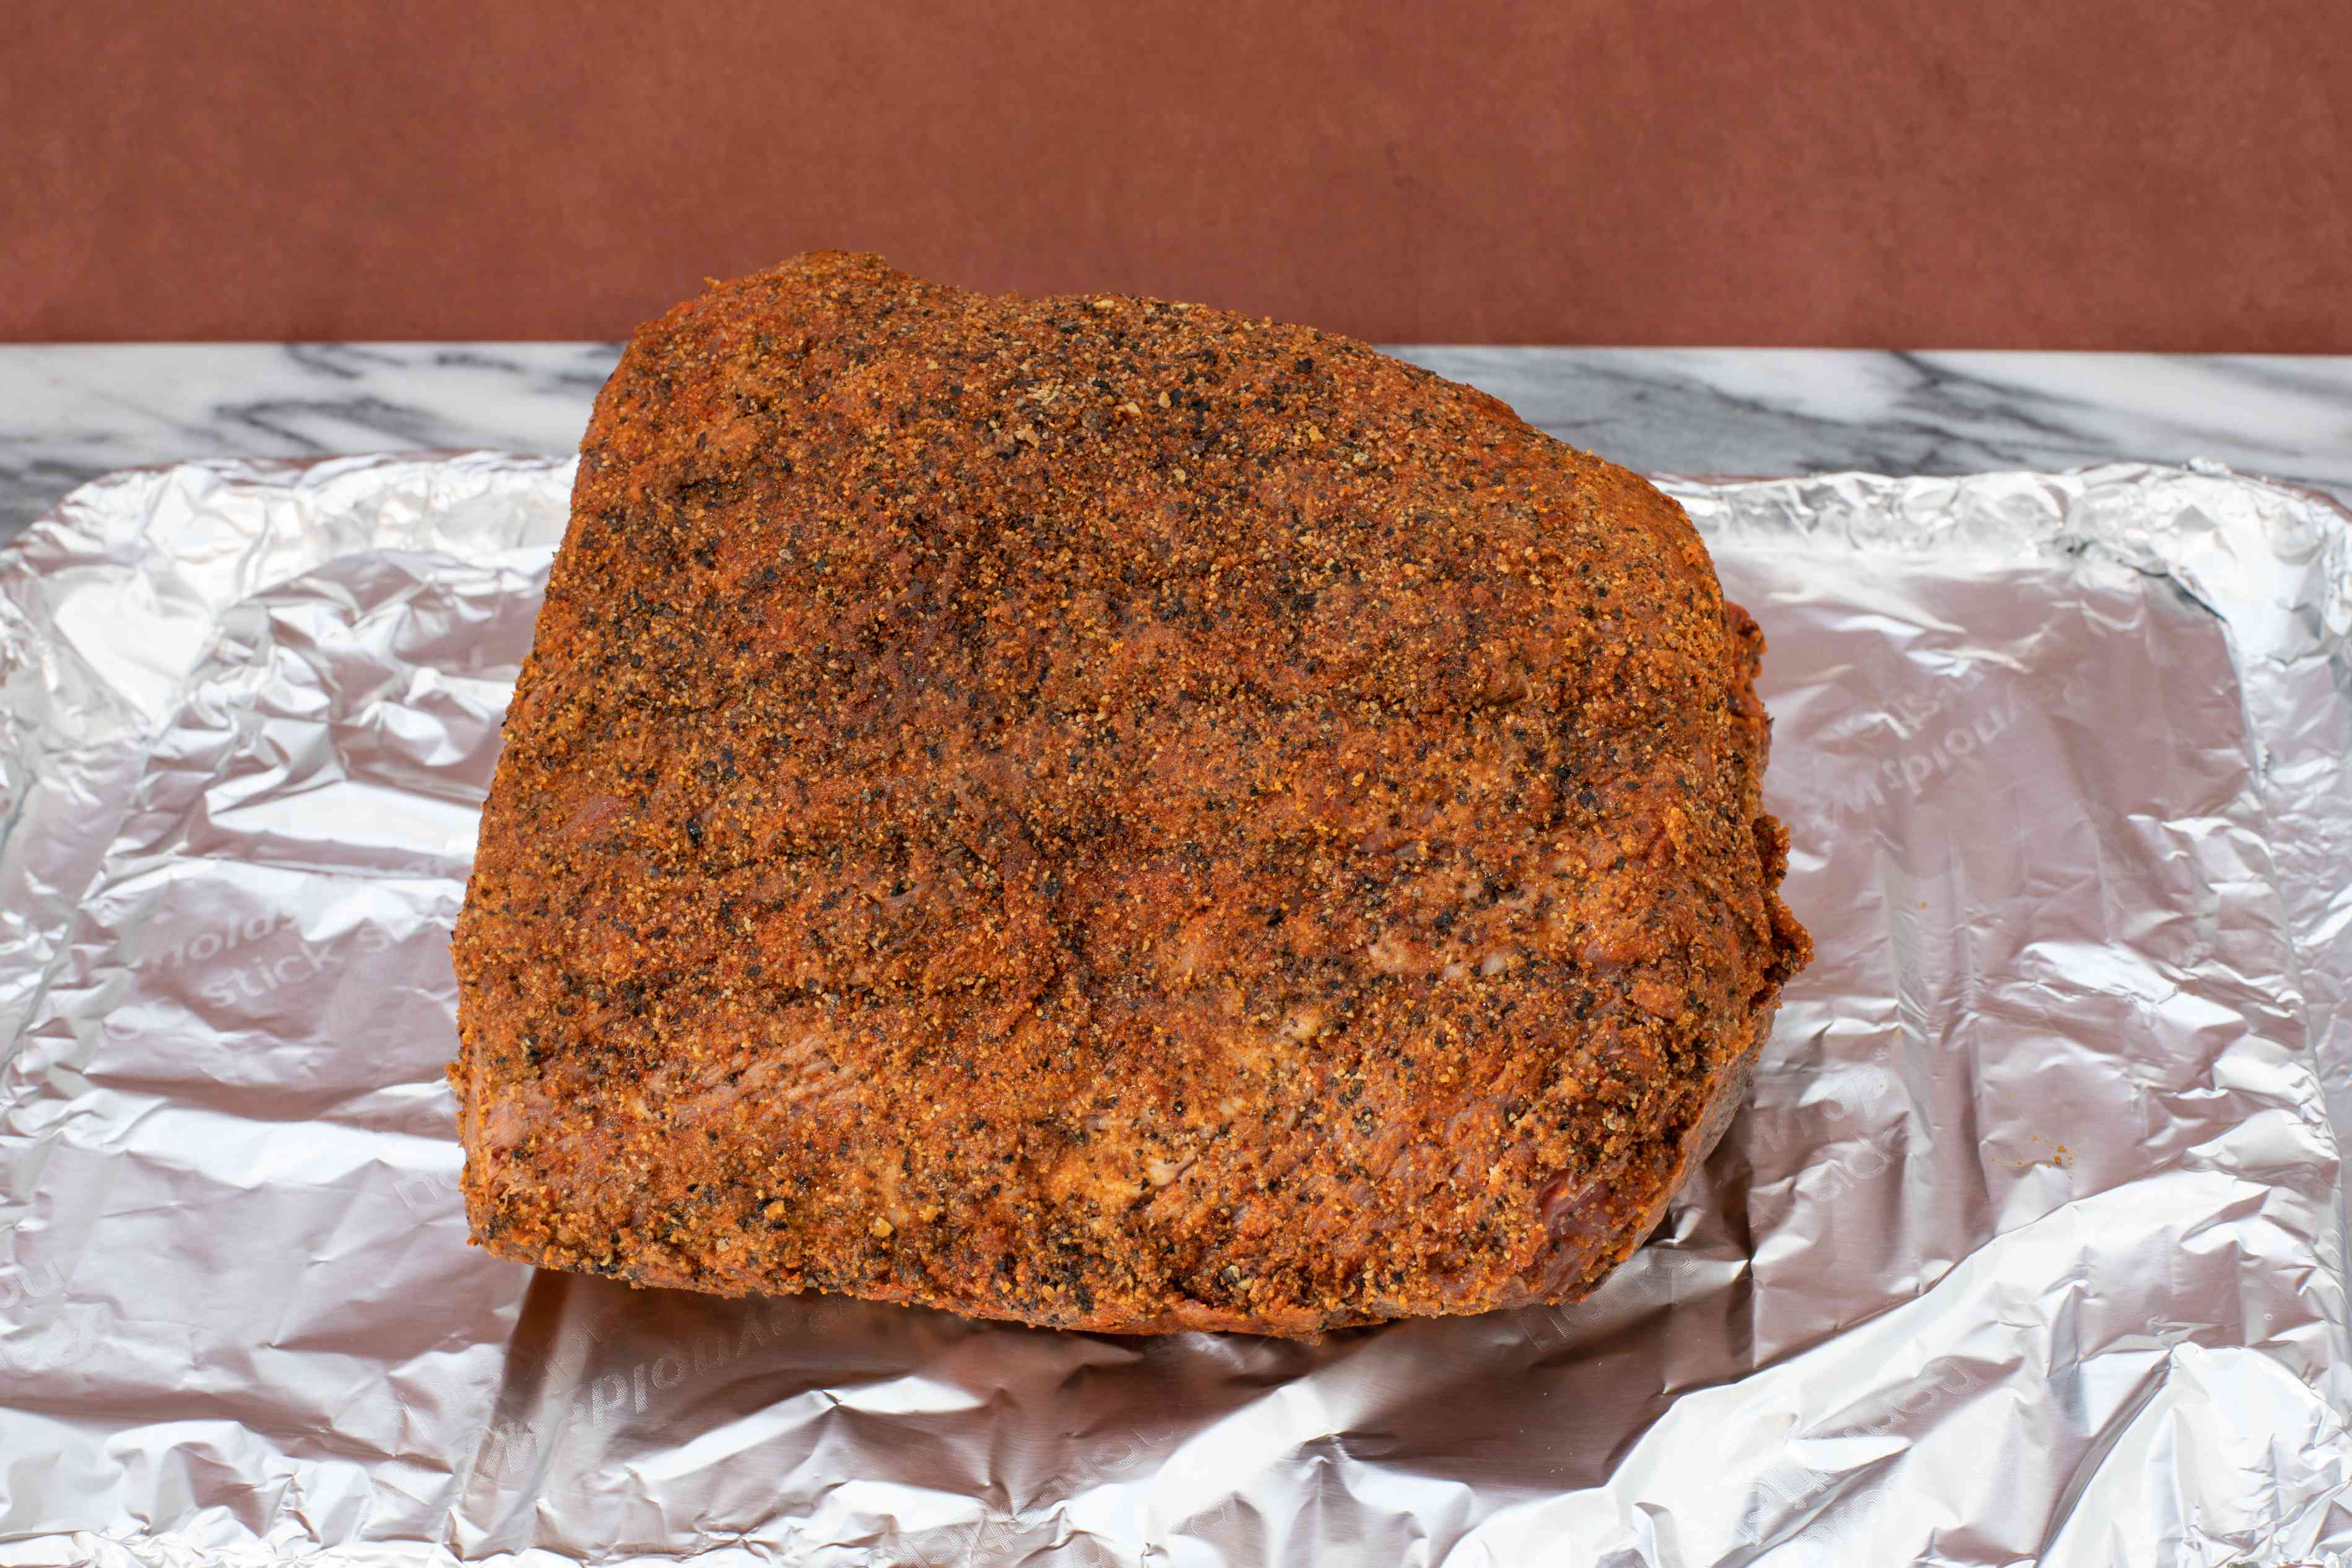 homemade pastrami with spice coating.